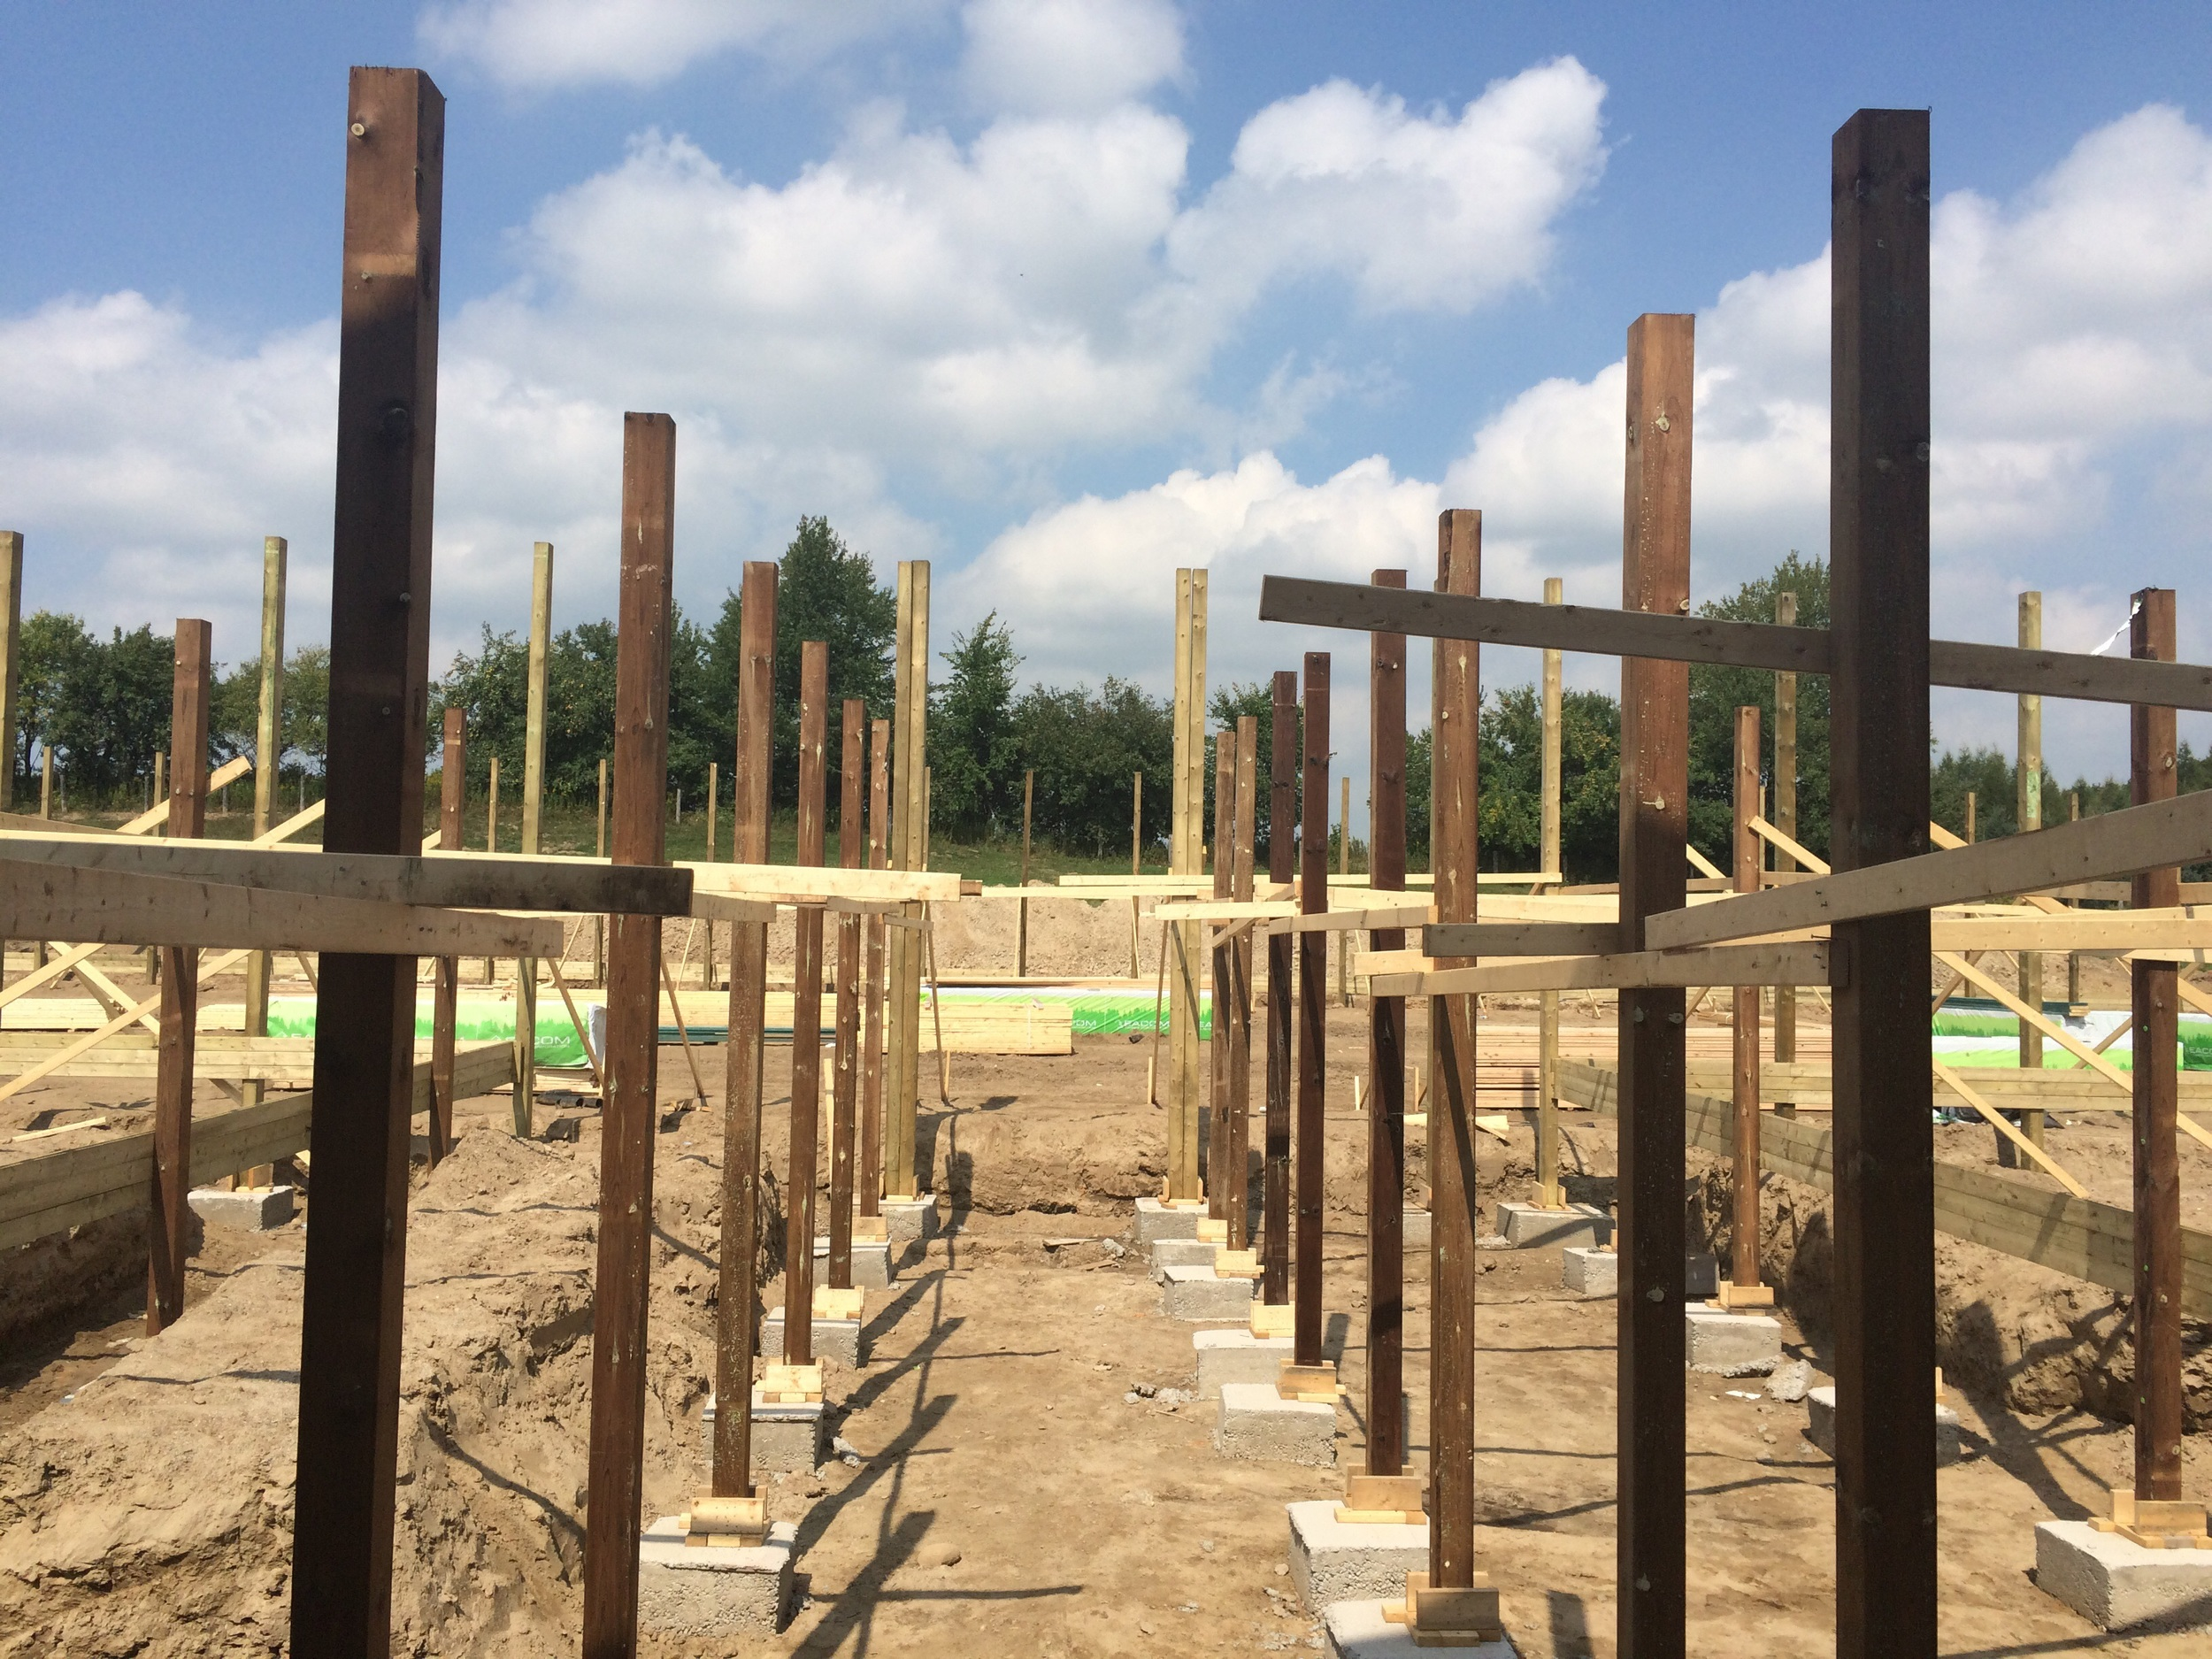 Posts for new Extension and Arena